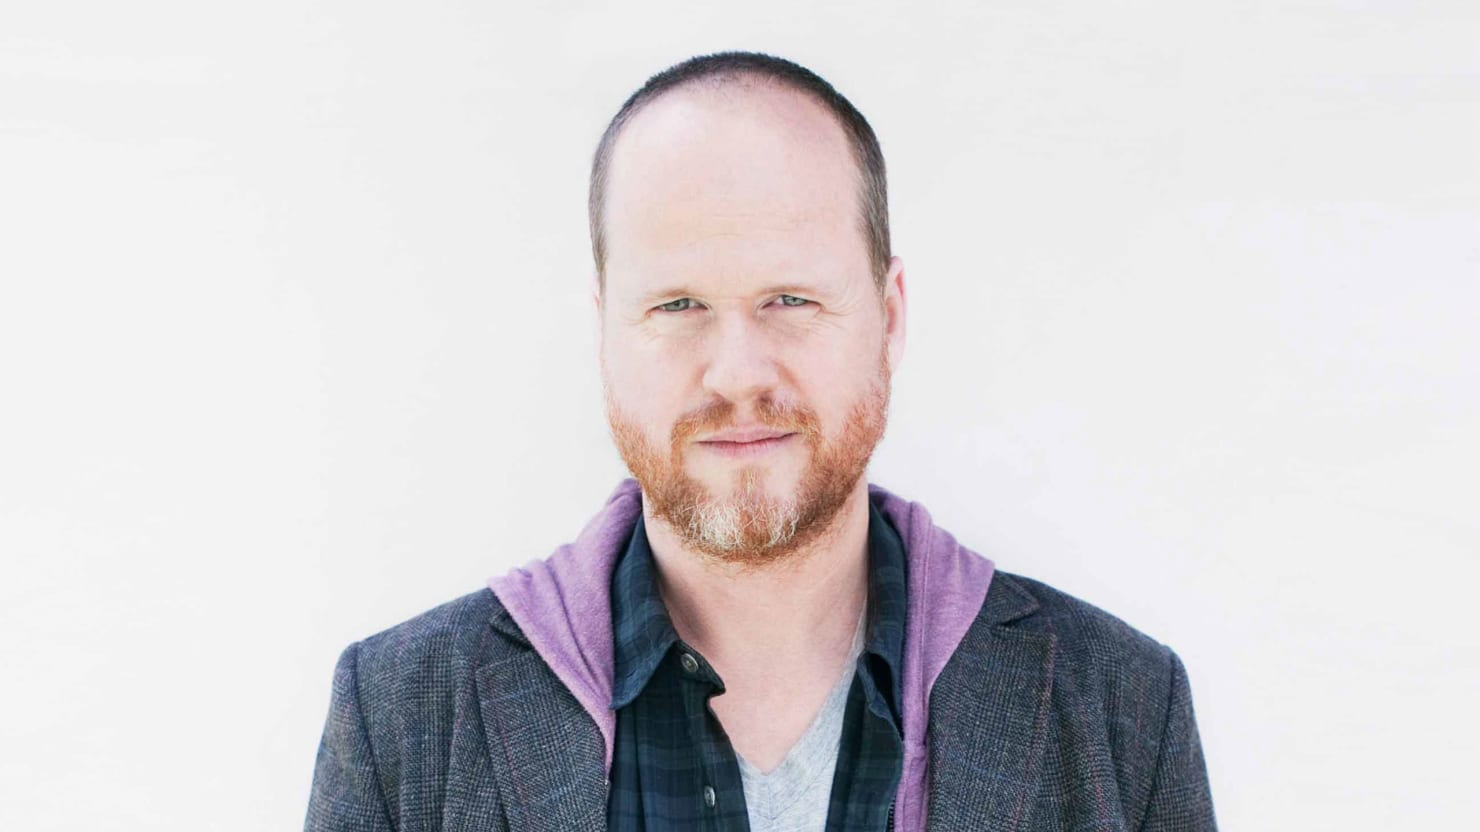 Joss Whedon on Assembling Hollywood's Avengers to Take Down 'Monster' Donald Trump